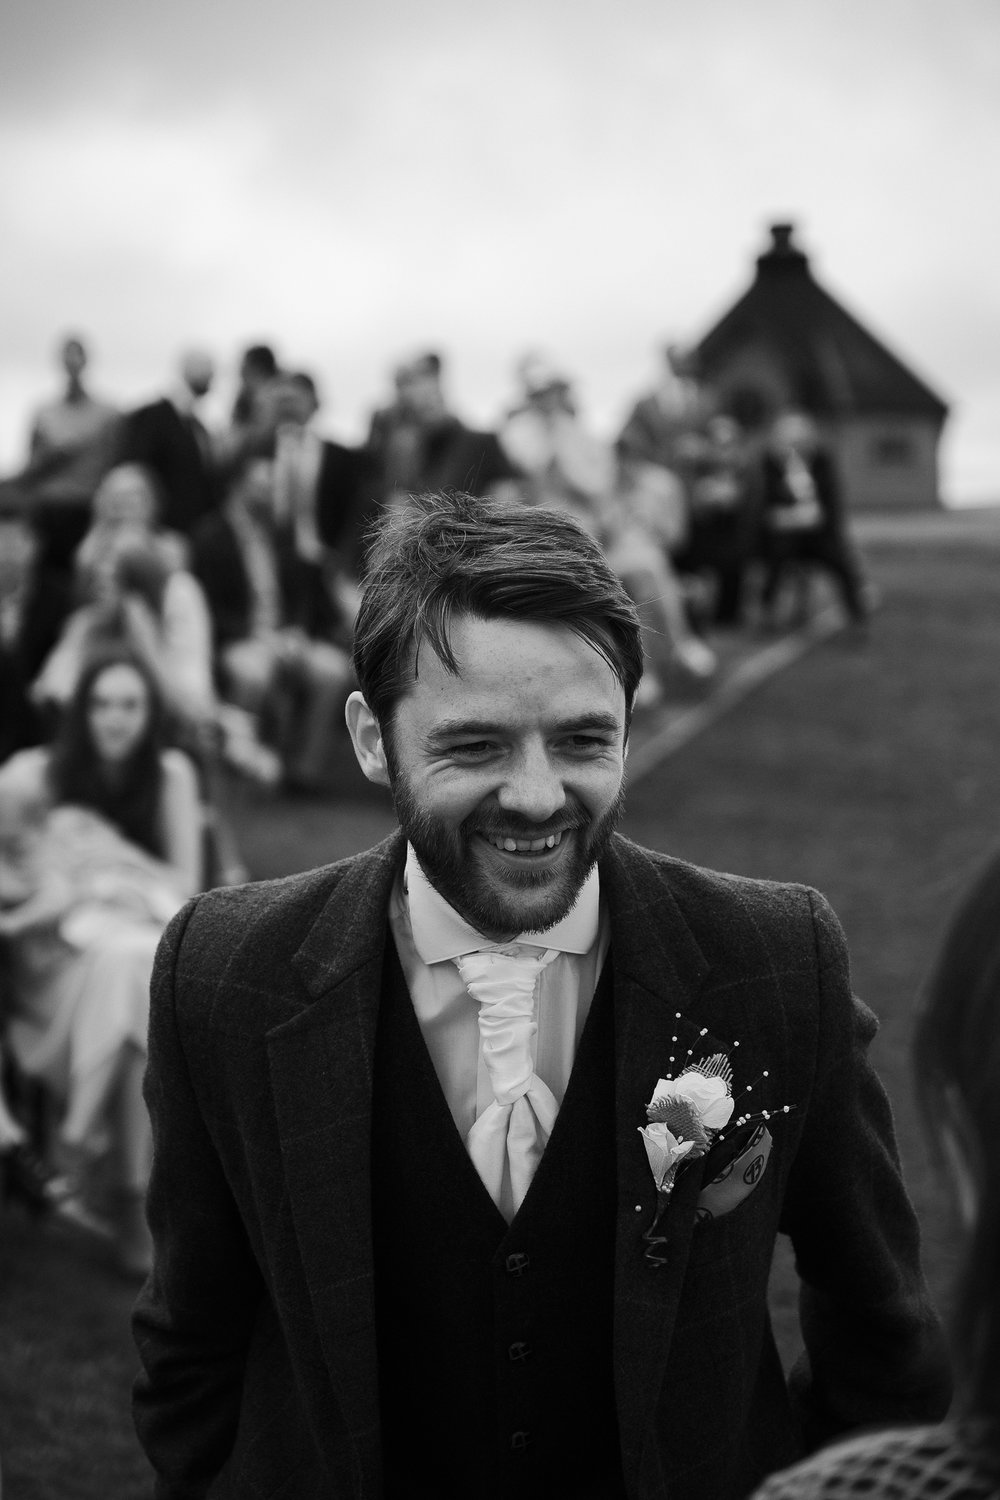 Black and white photo of the groom smiling as he waits for the bride's arrival